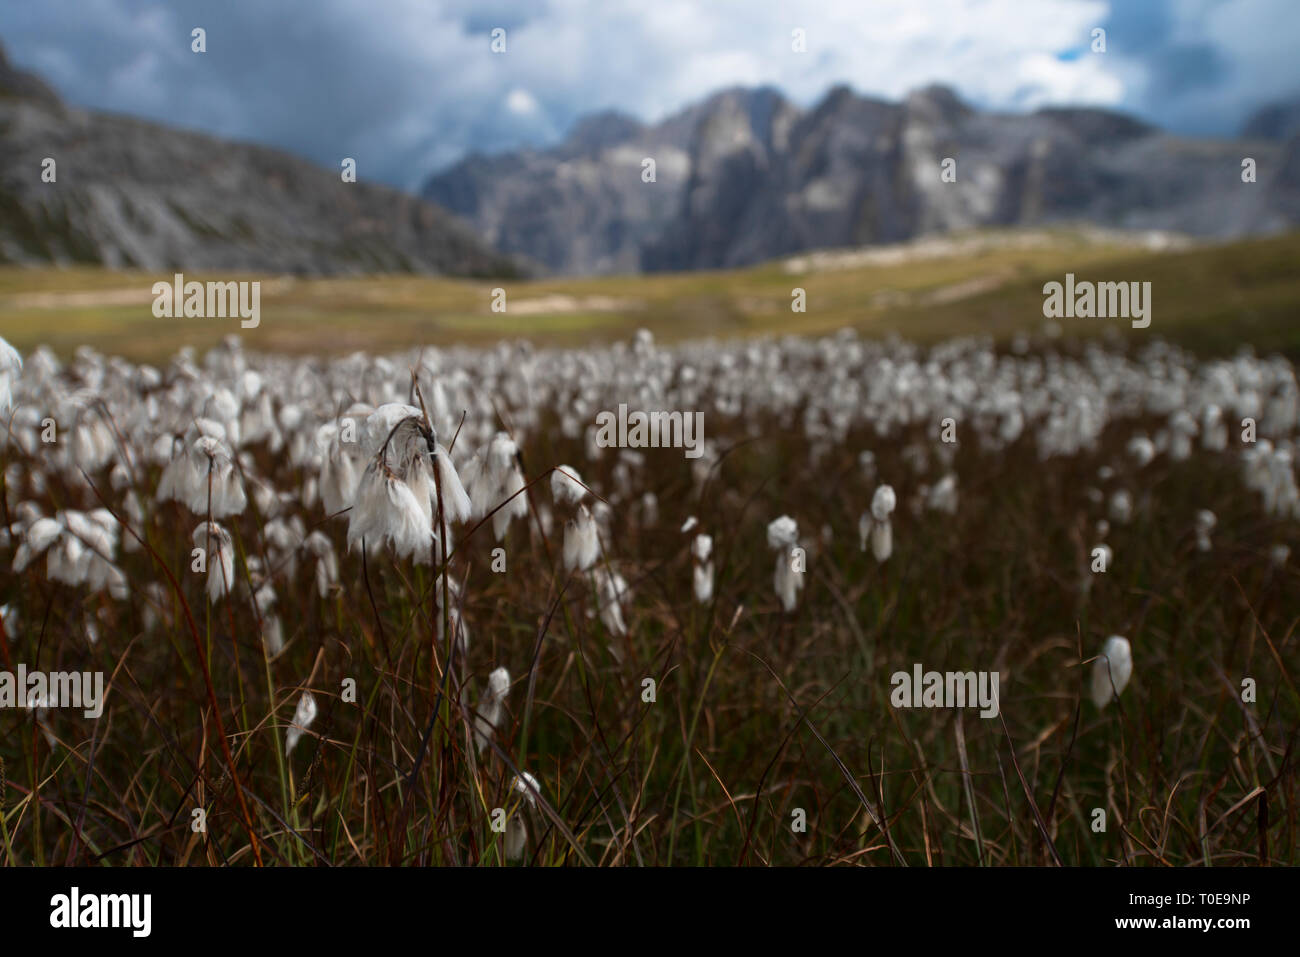 Beautiful white flowers in mountain landscape in the foreground, Dolomites. Eryophorum latifolium also called cottongrass, cotton-grass or cottonsedge - Stock Image